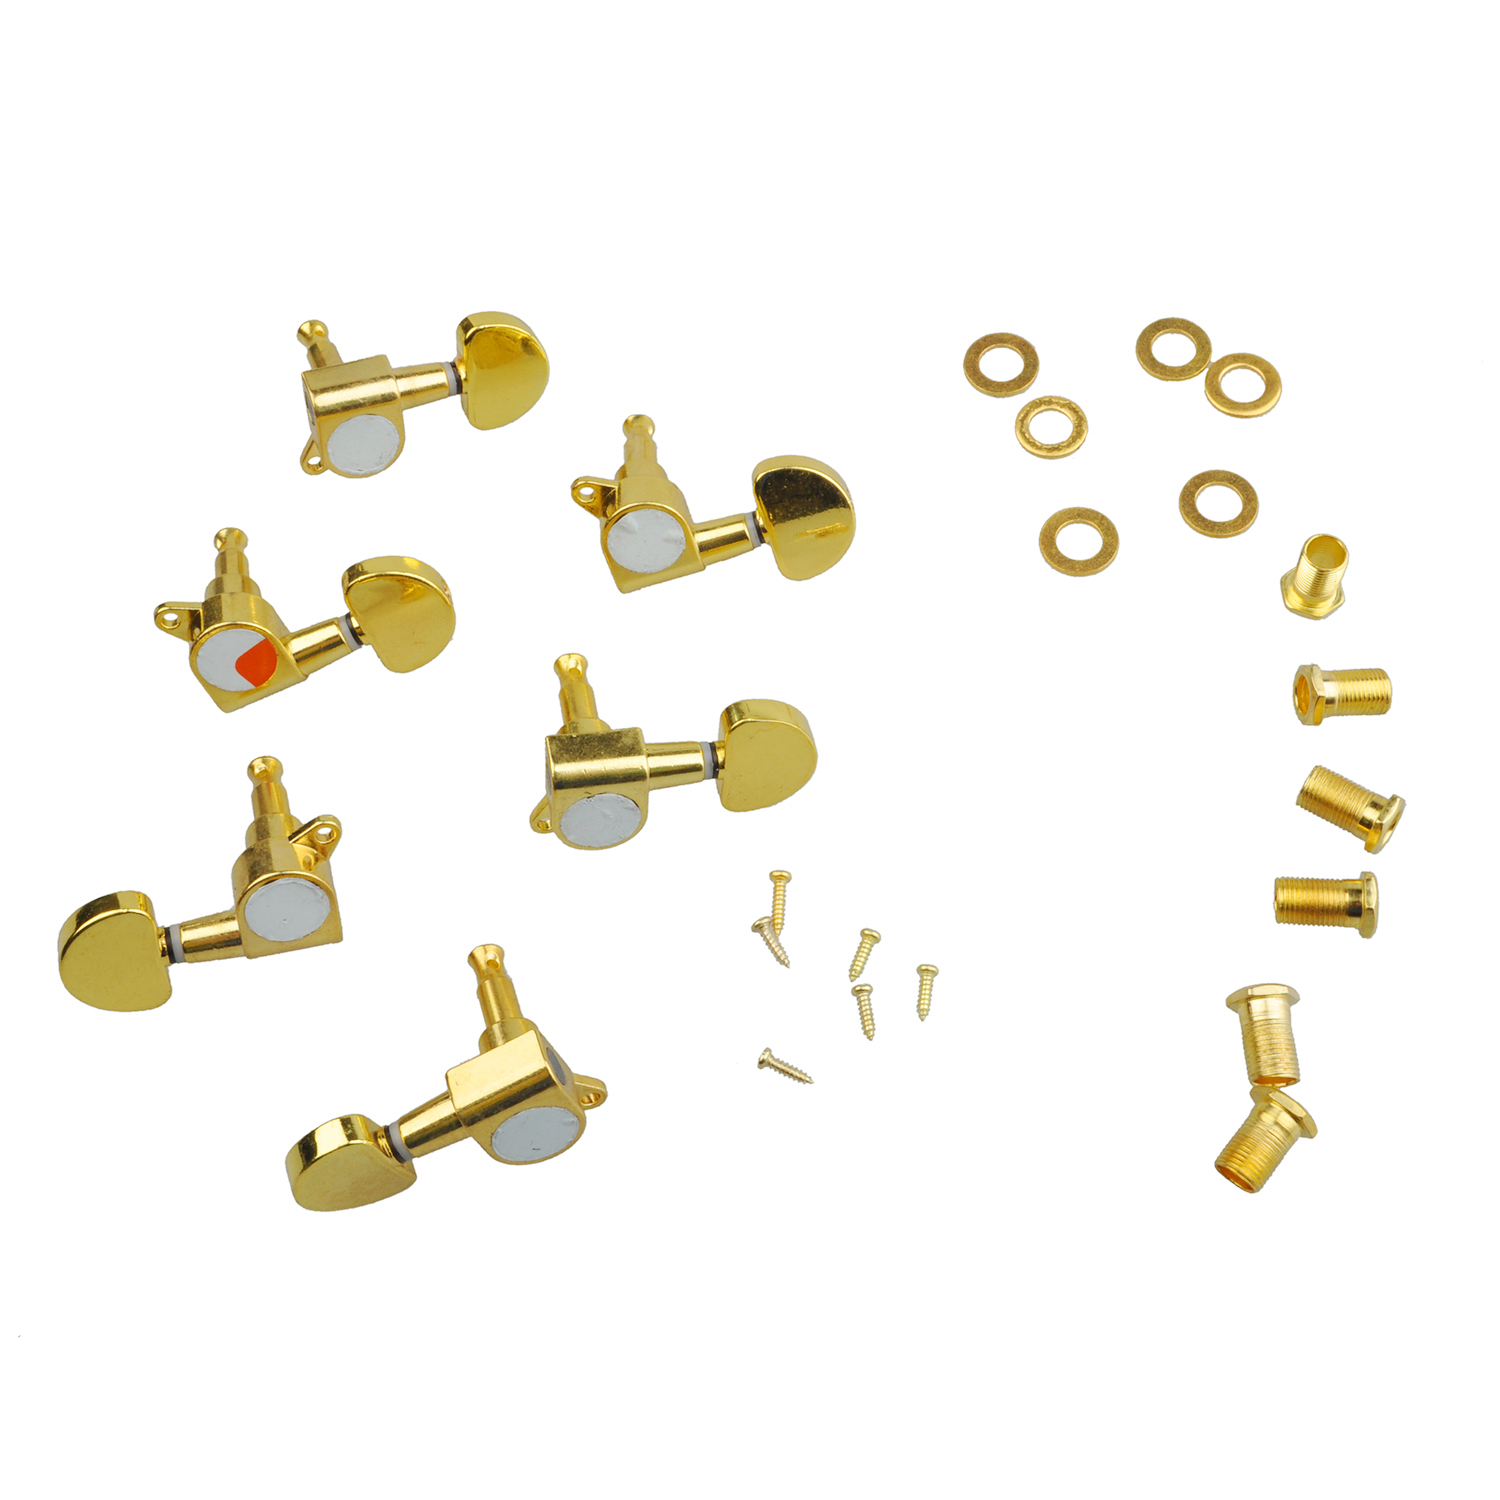 Wholesale 5X 3 Pairs Sealed Guitar String Tuning Pegs Tuners Machine Heads 3L + 3R Gold / Steel and Zinc Alloy Gold Guitar Heads<br>